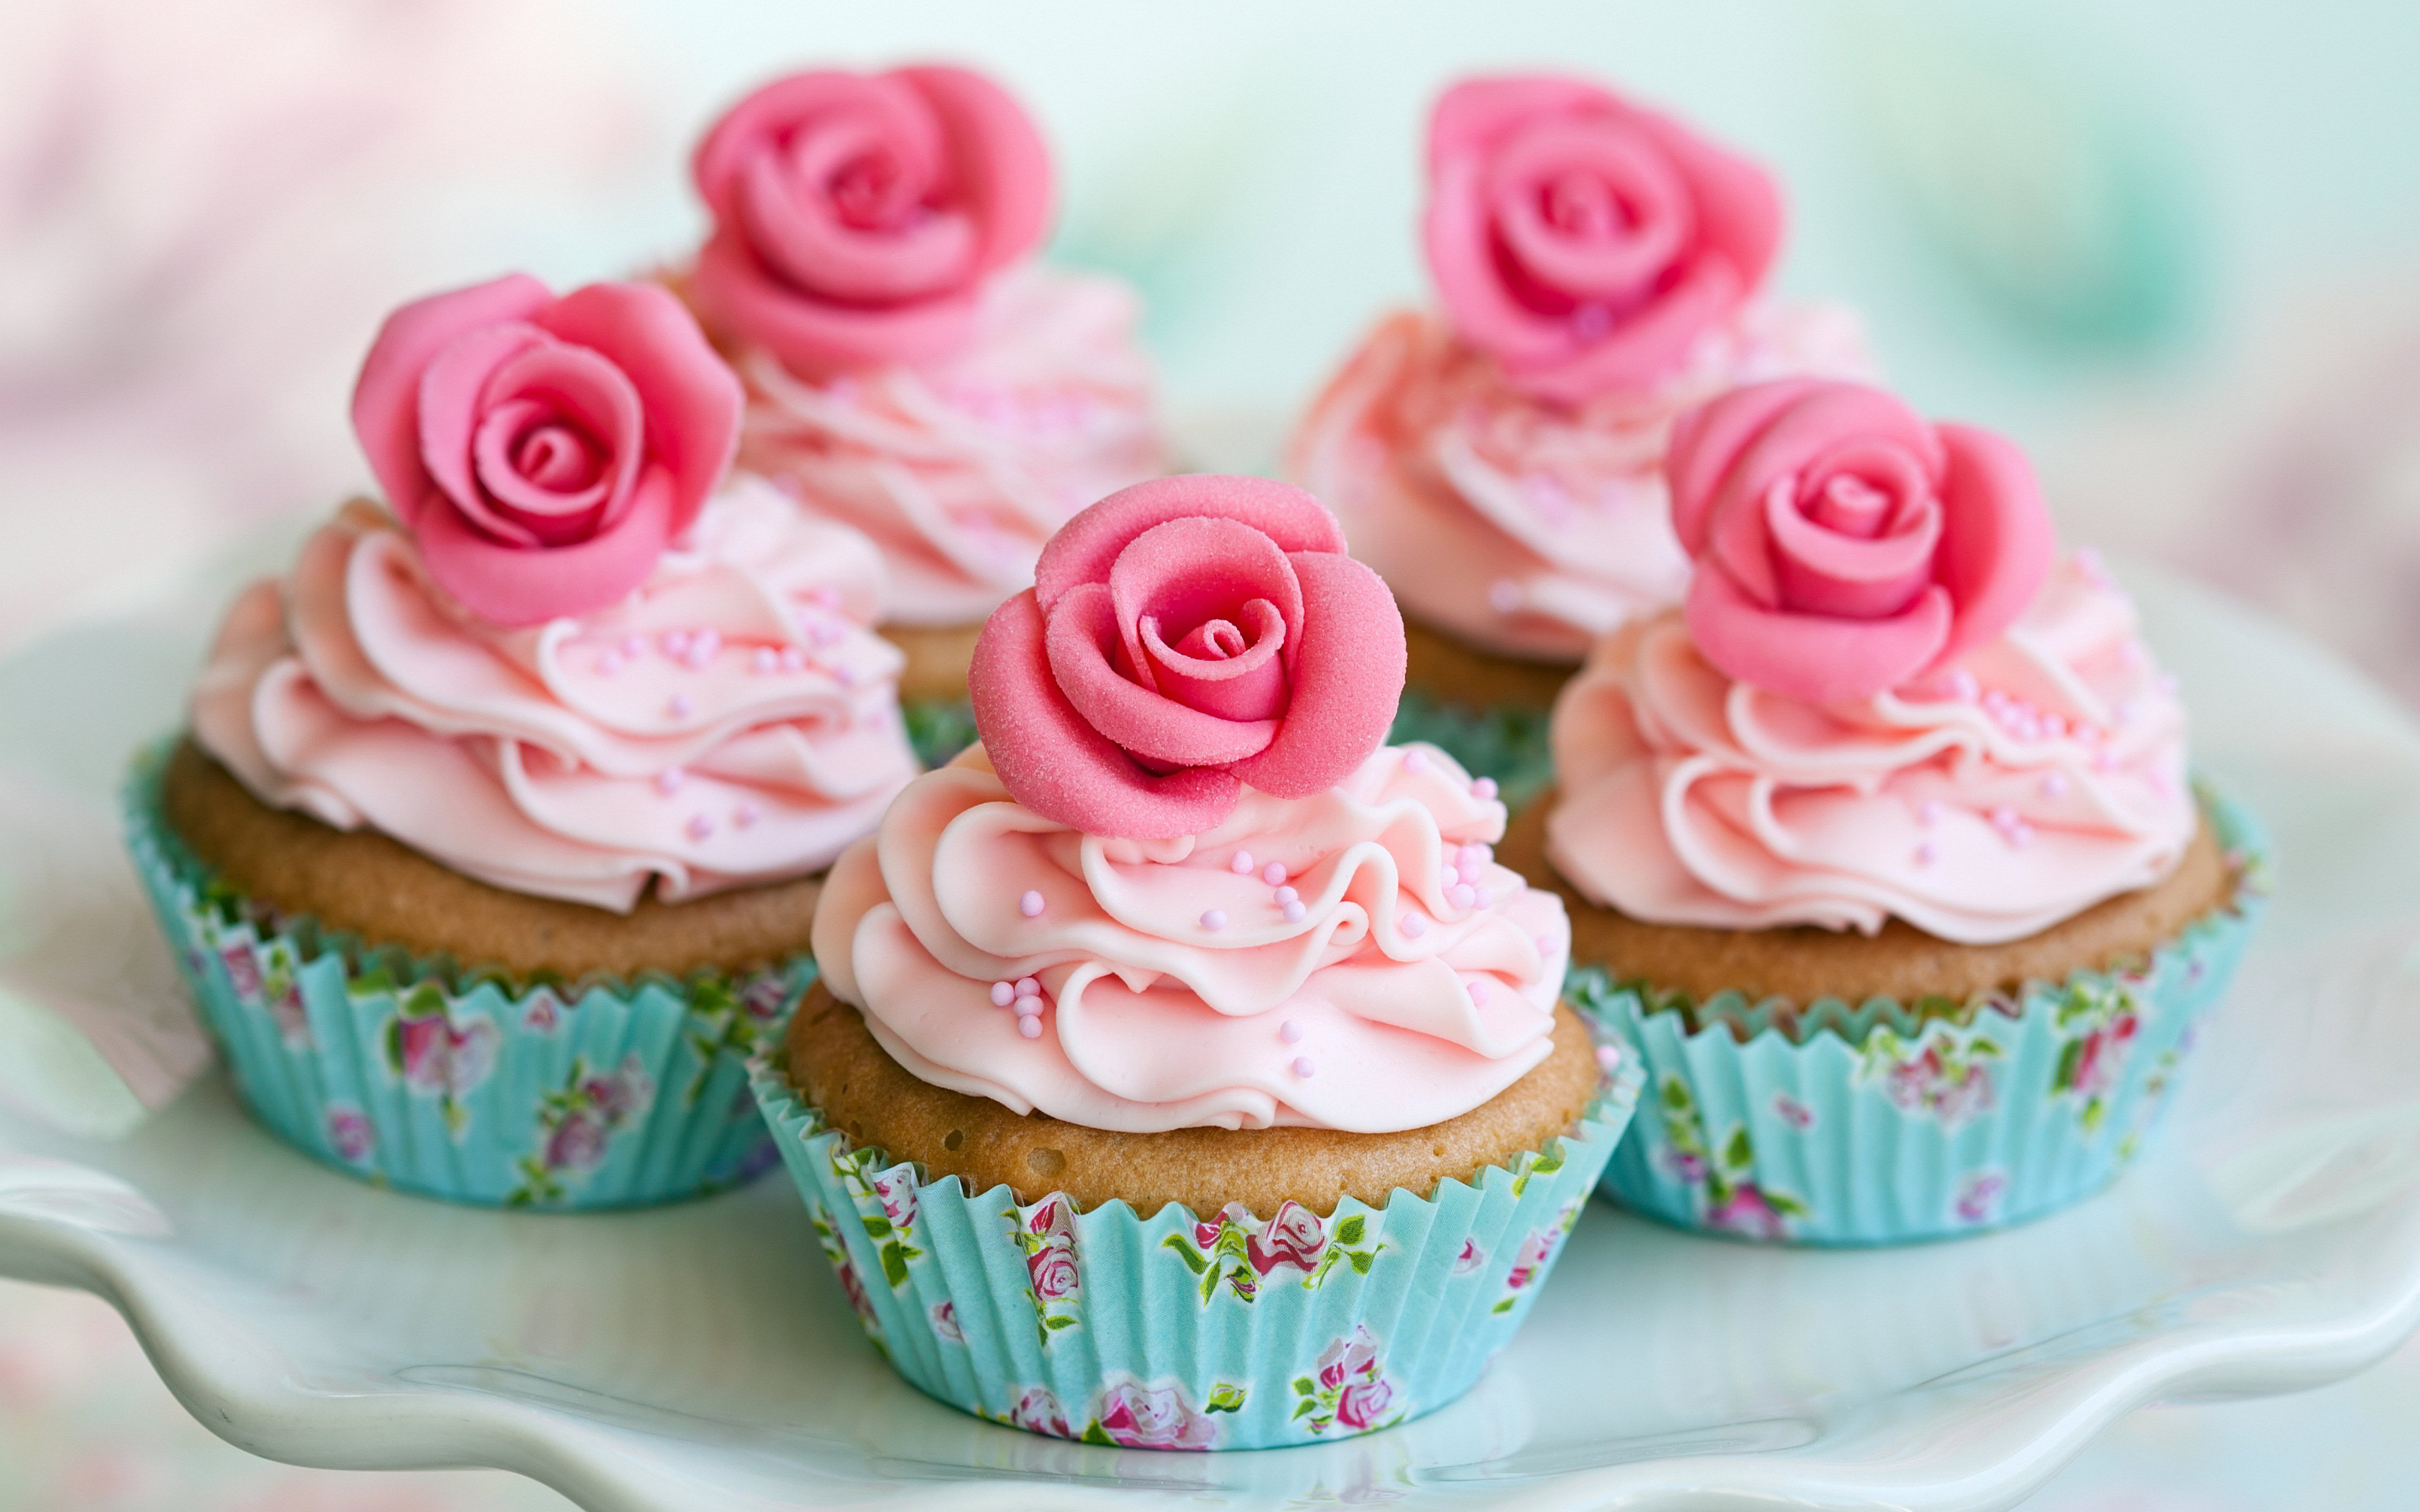 Adorable Little Rose Cupcakes